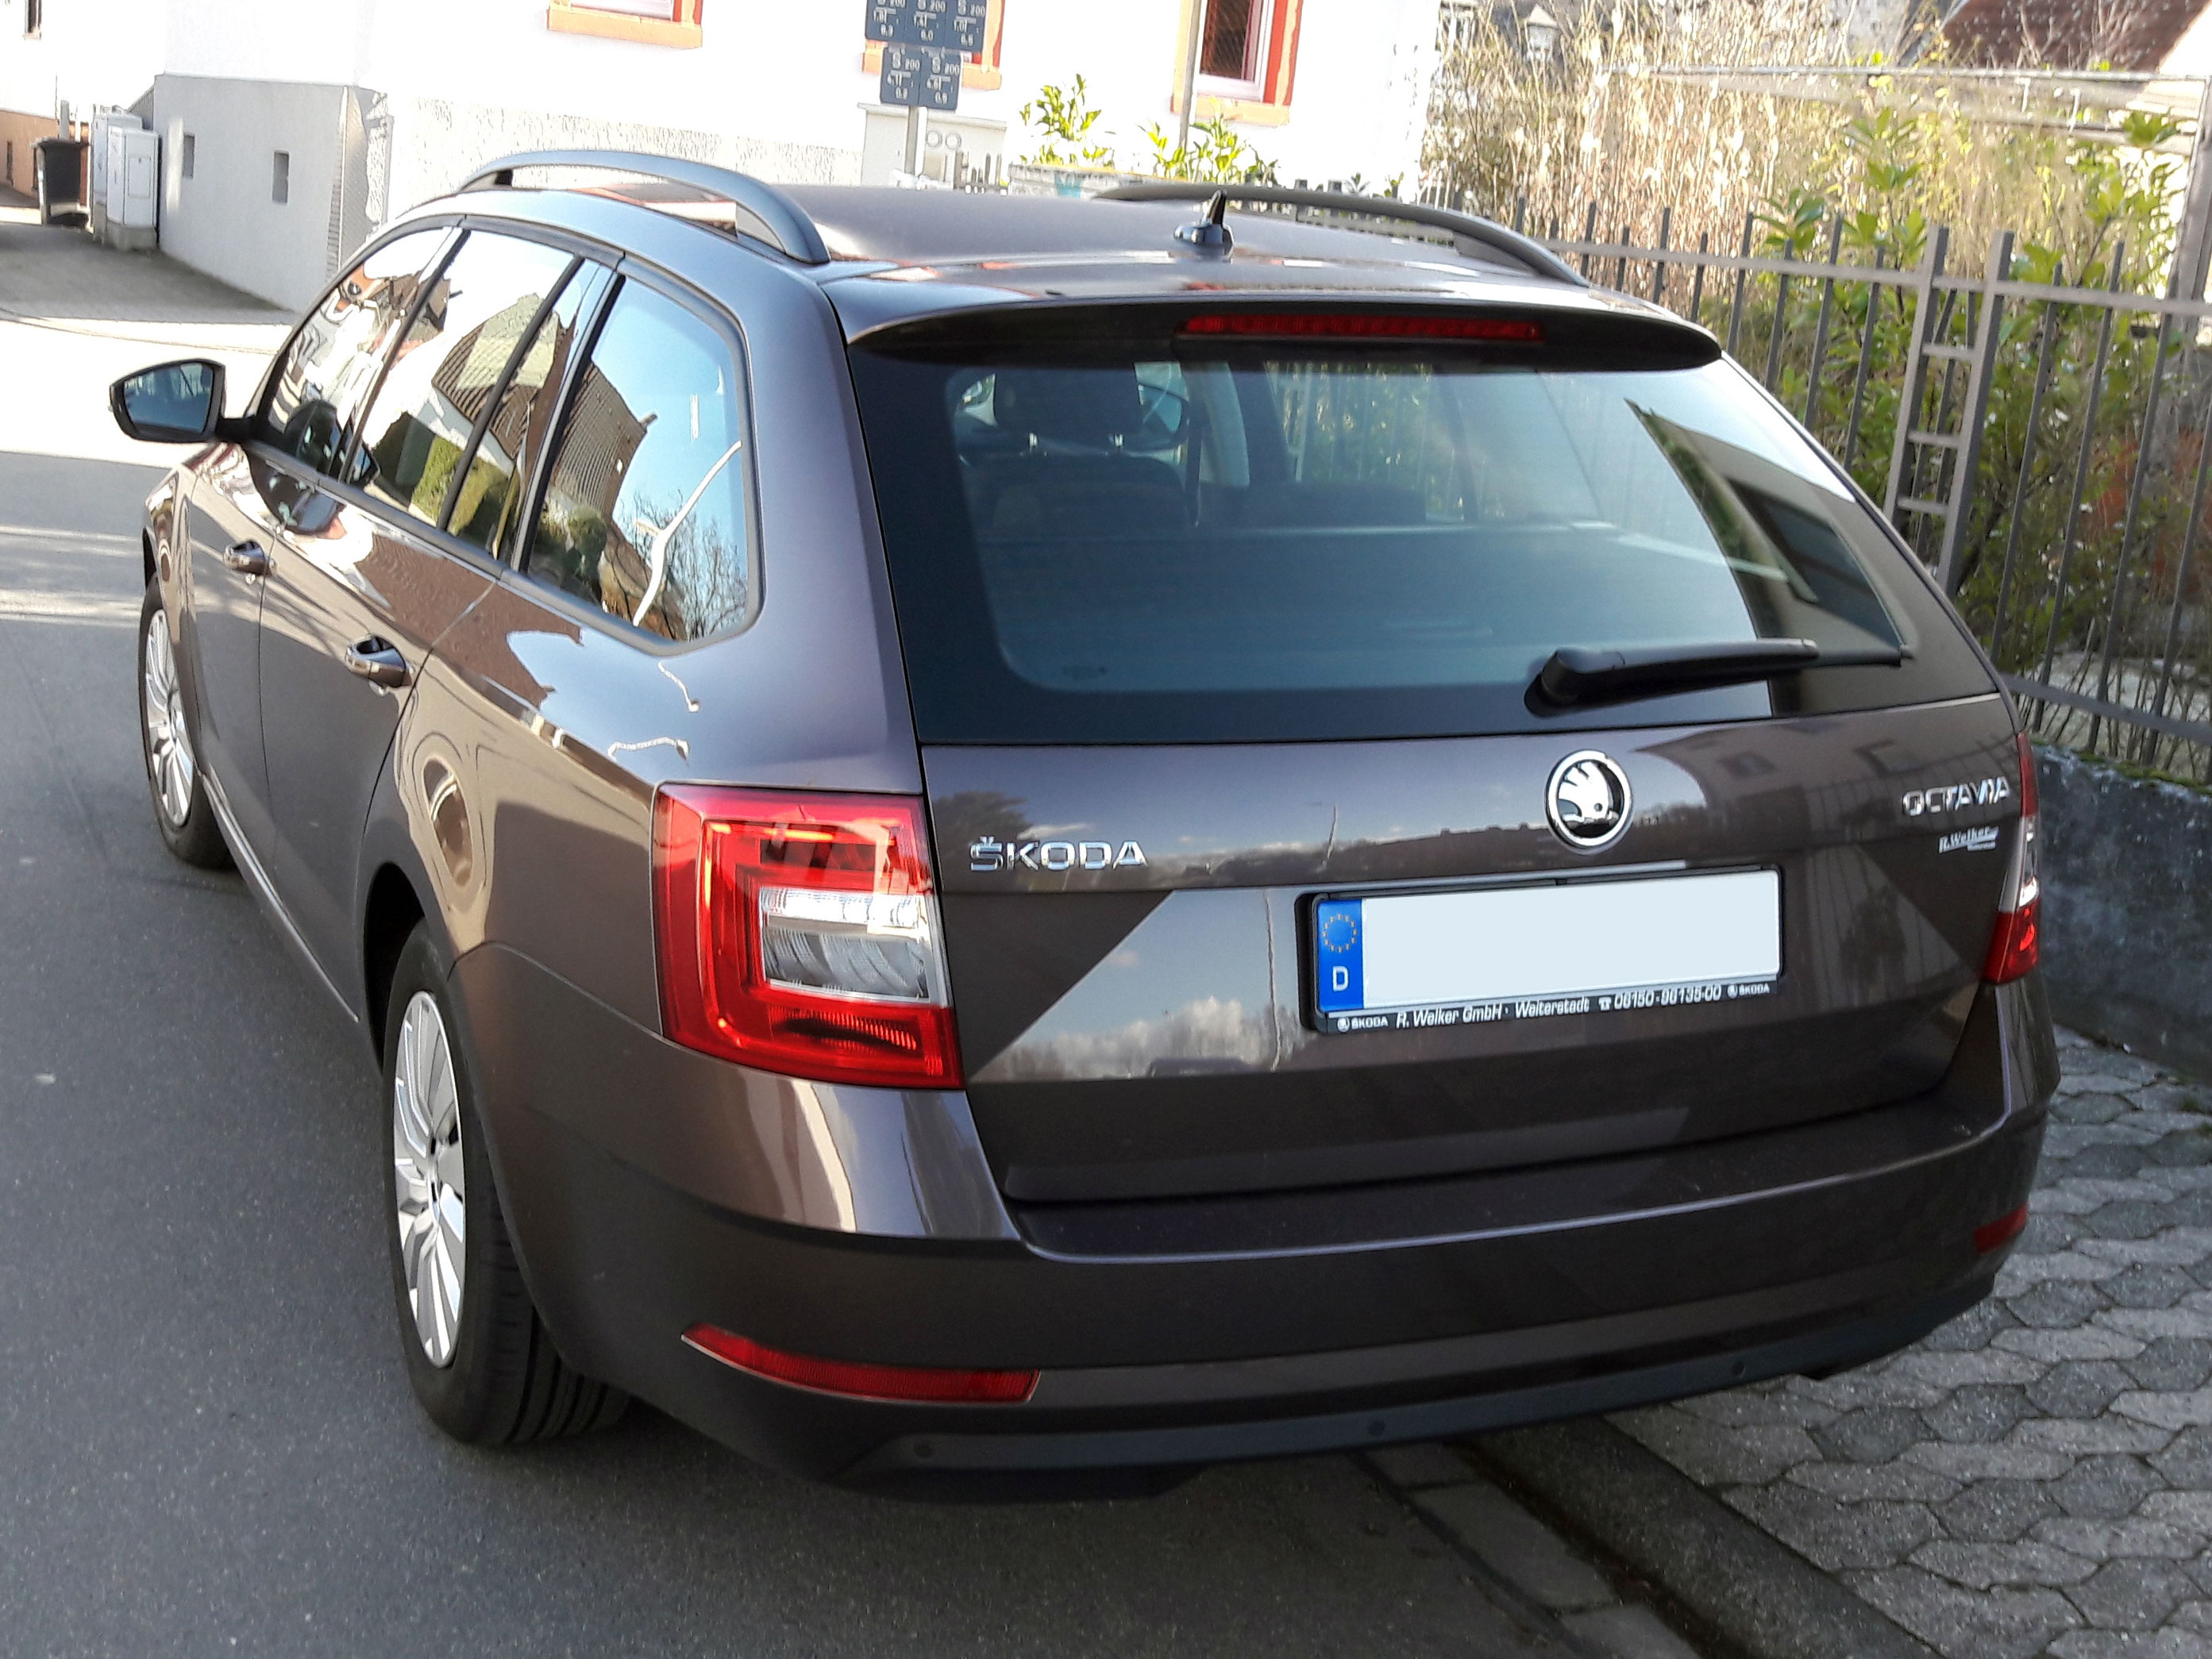 Skoda Fabia III 2014 - now Station wagon 5 door #1